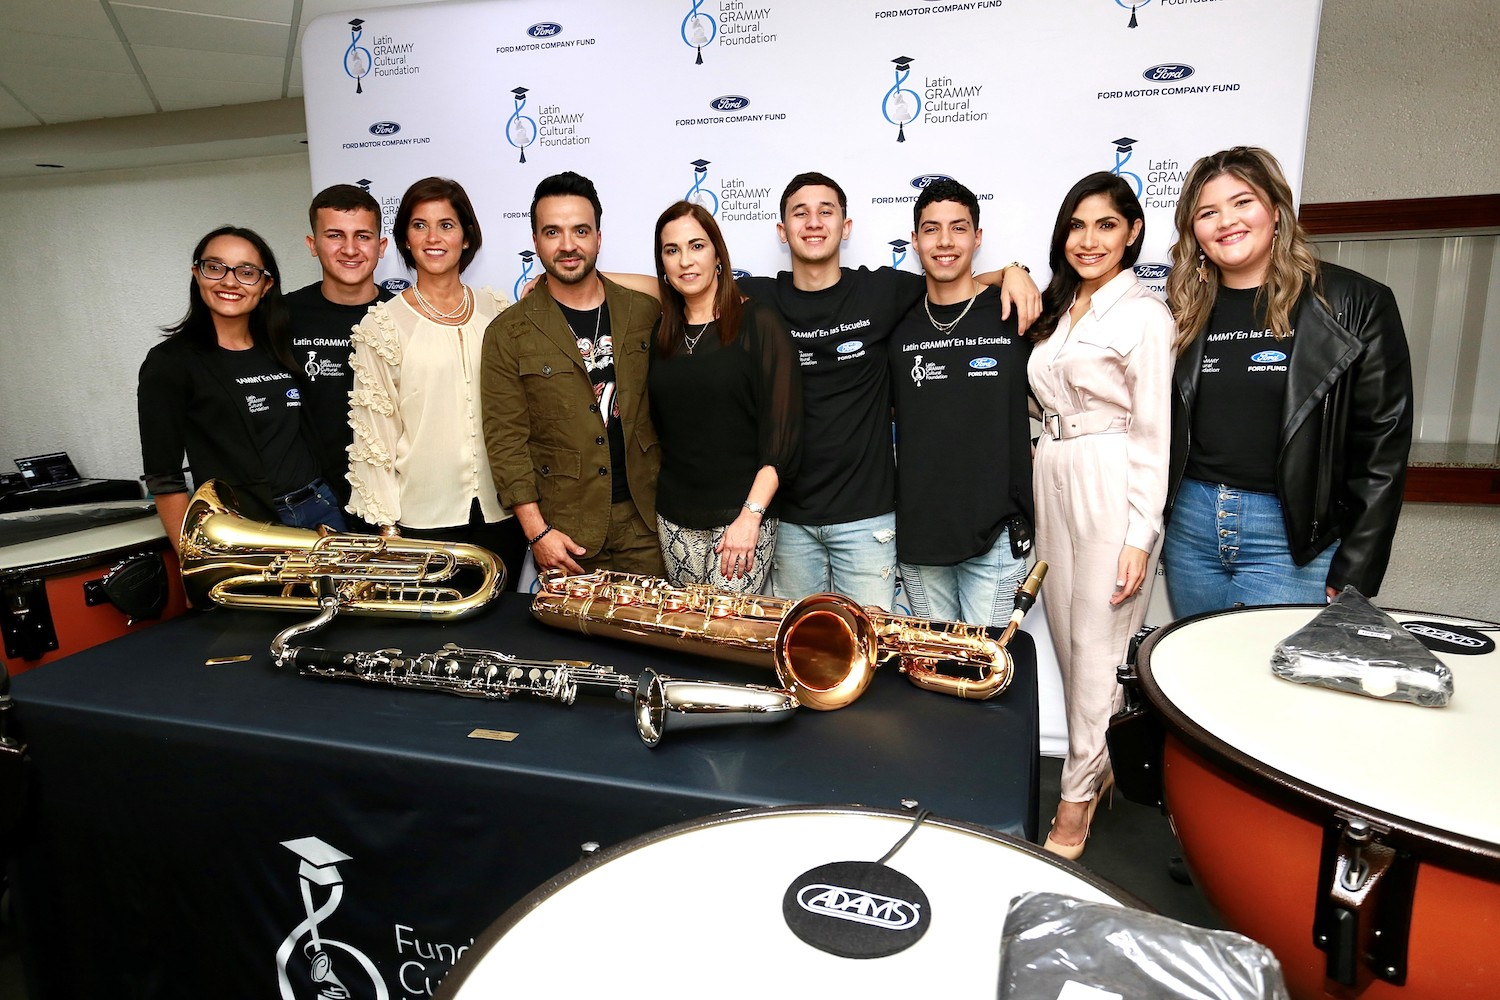 latin grammy foundation, luis fonsi